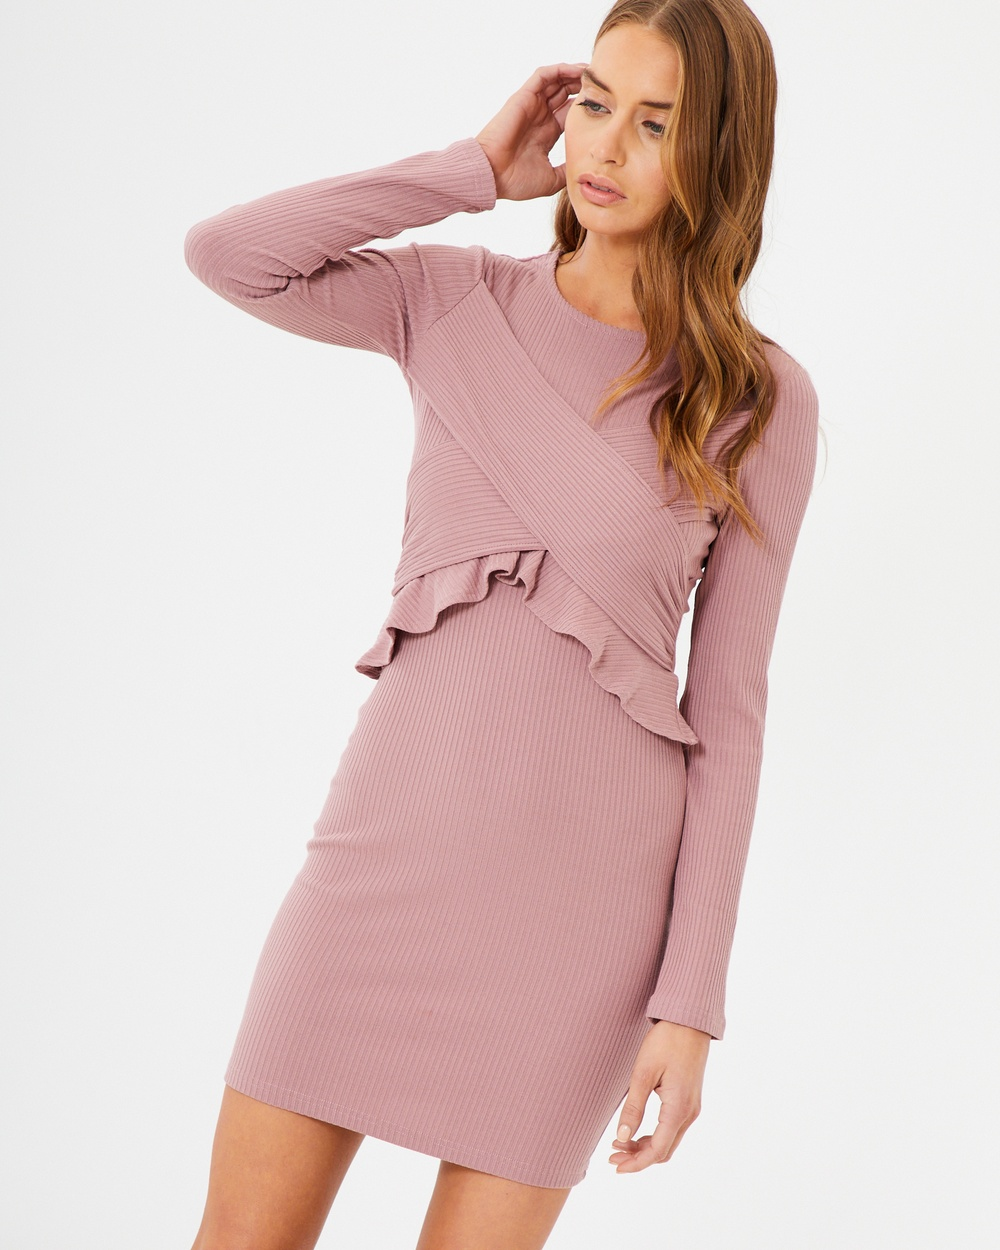 Tussah Susanna Knit Dress Bodycon Dresses Dusty Pink Susanna Knit Dress